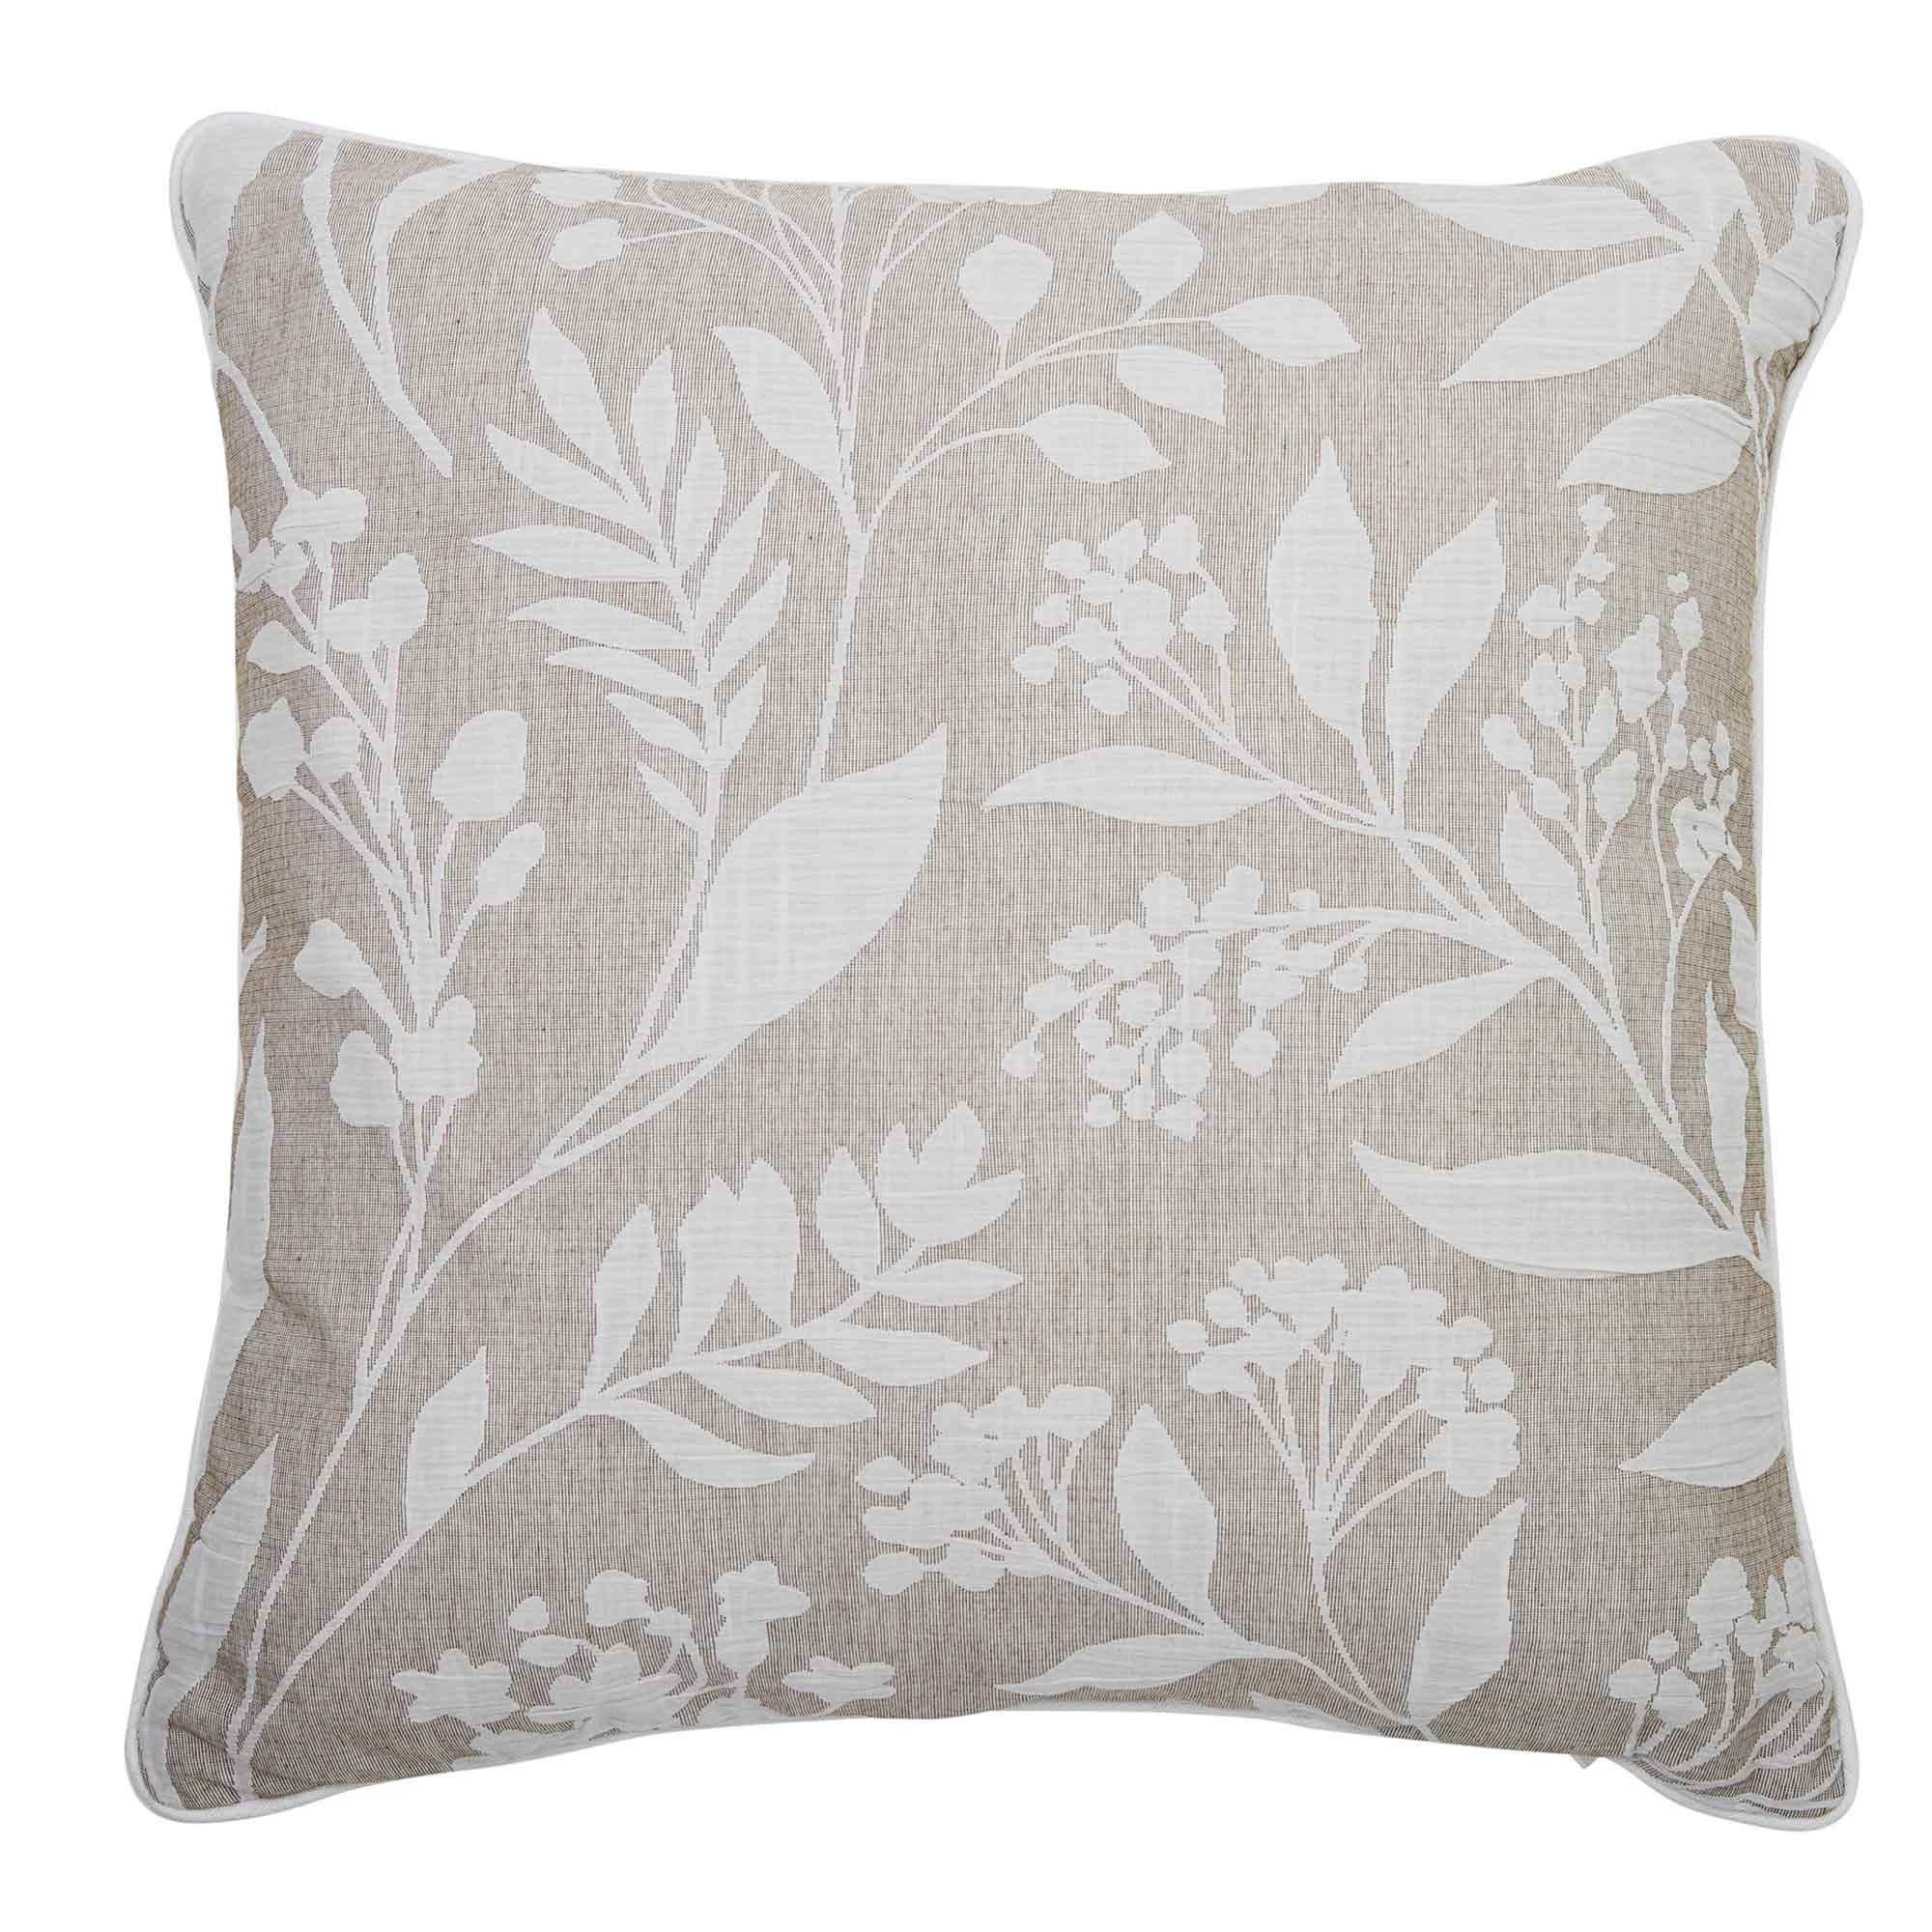 "Layla Taupe Square Throw Pillow 18"" x 18"" [Luxury comforter Sets] [by Latest Bedding]"